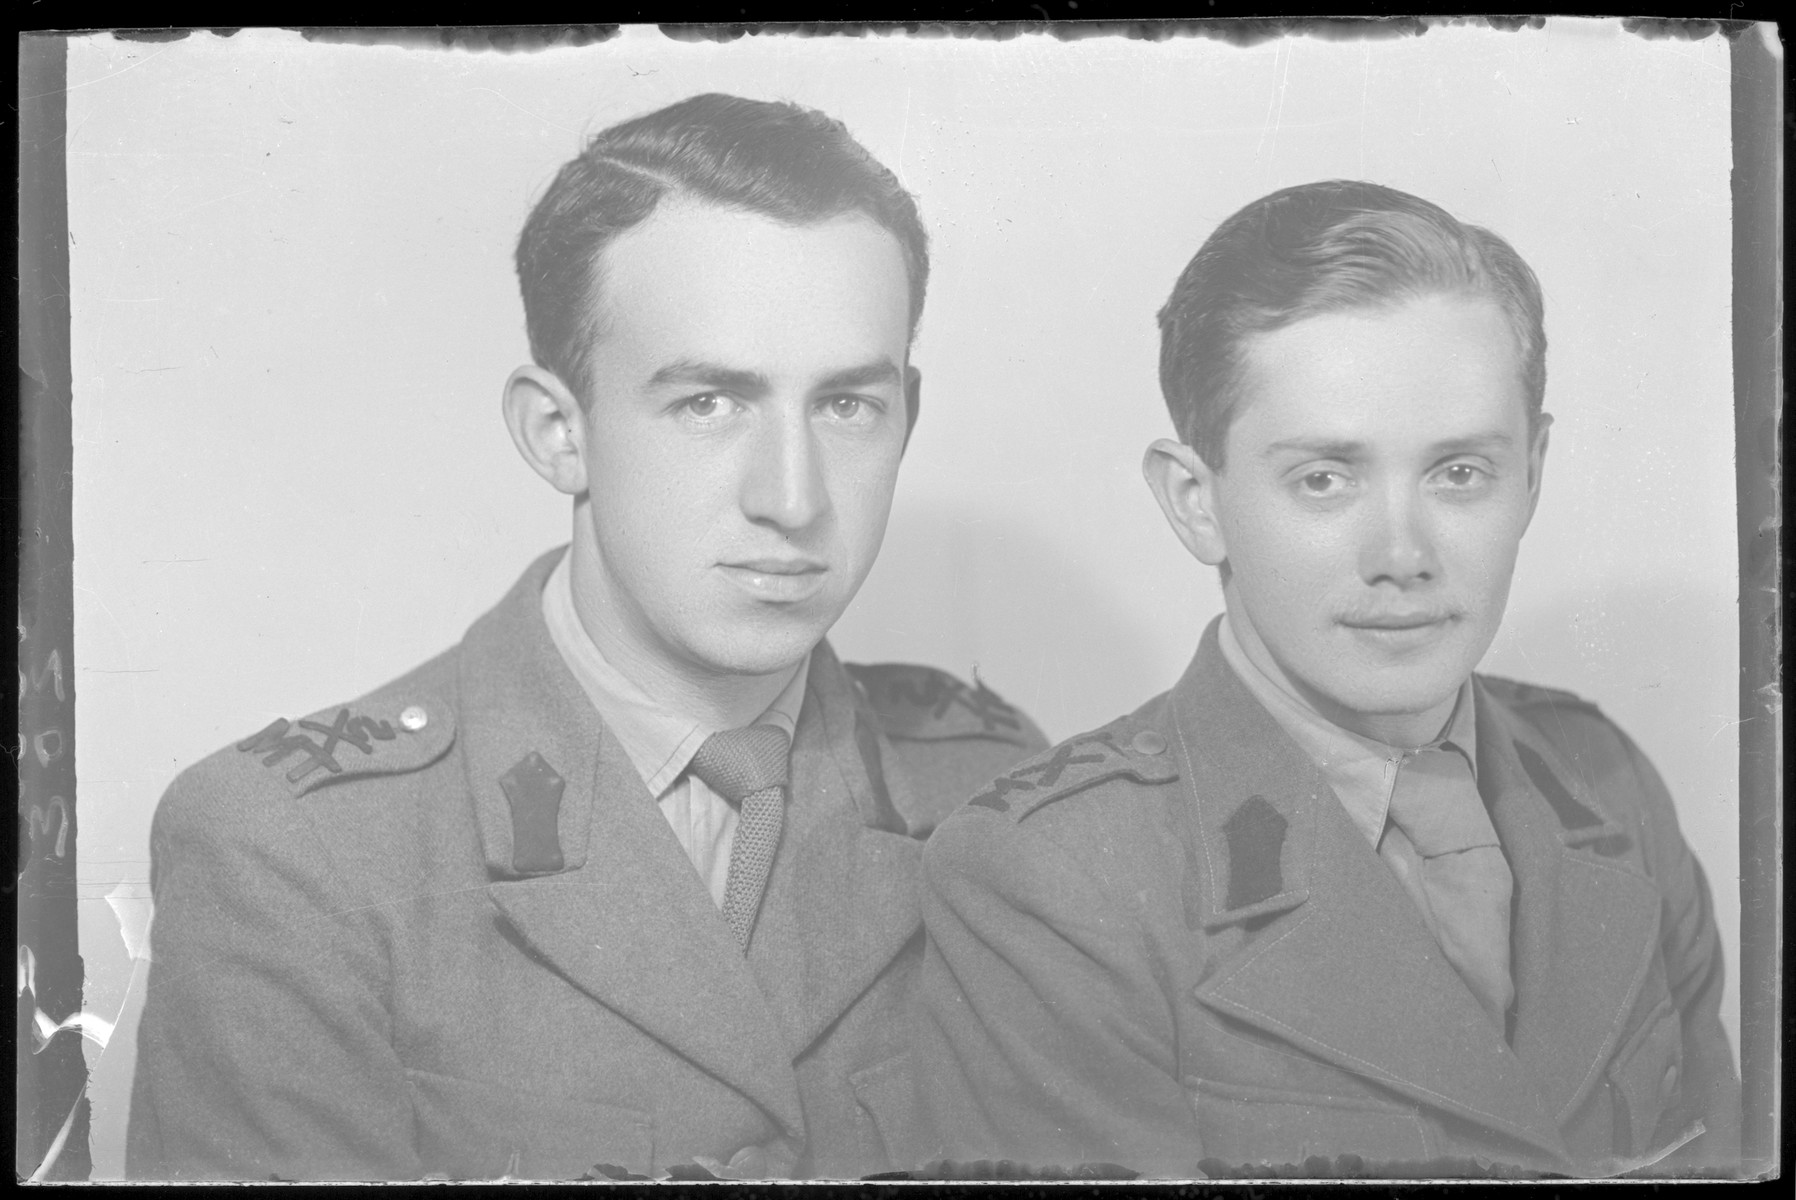 Studio portrait of Tibor Rozenberg and another man, both in uniform.